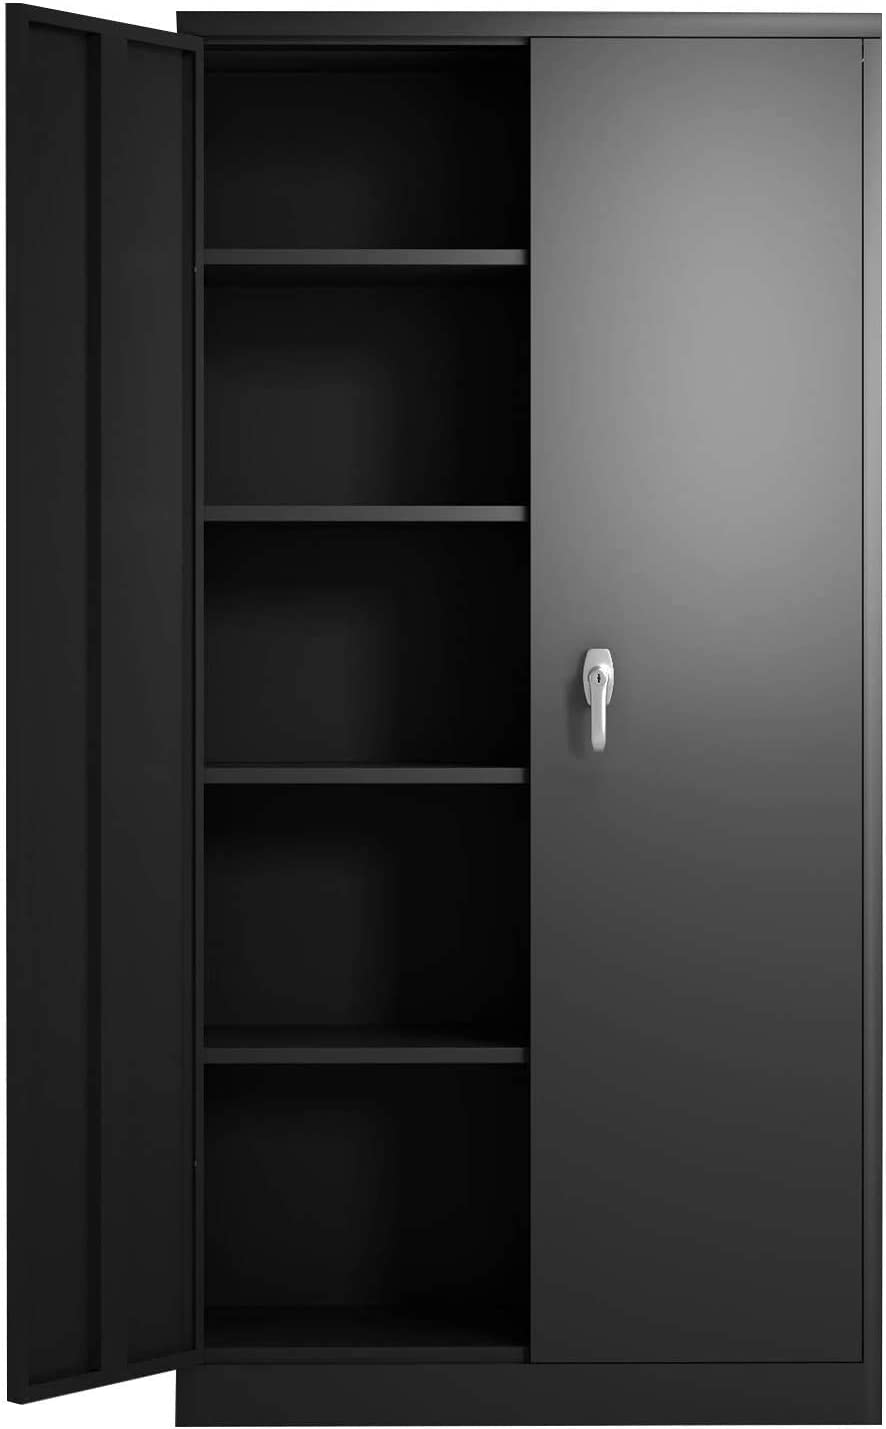 GREATMEET Metal Storage Cabinets with and 4 Locking Doors Product Adjust Ranking TOP17